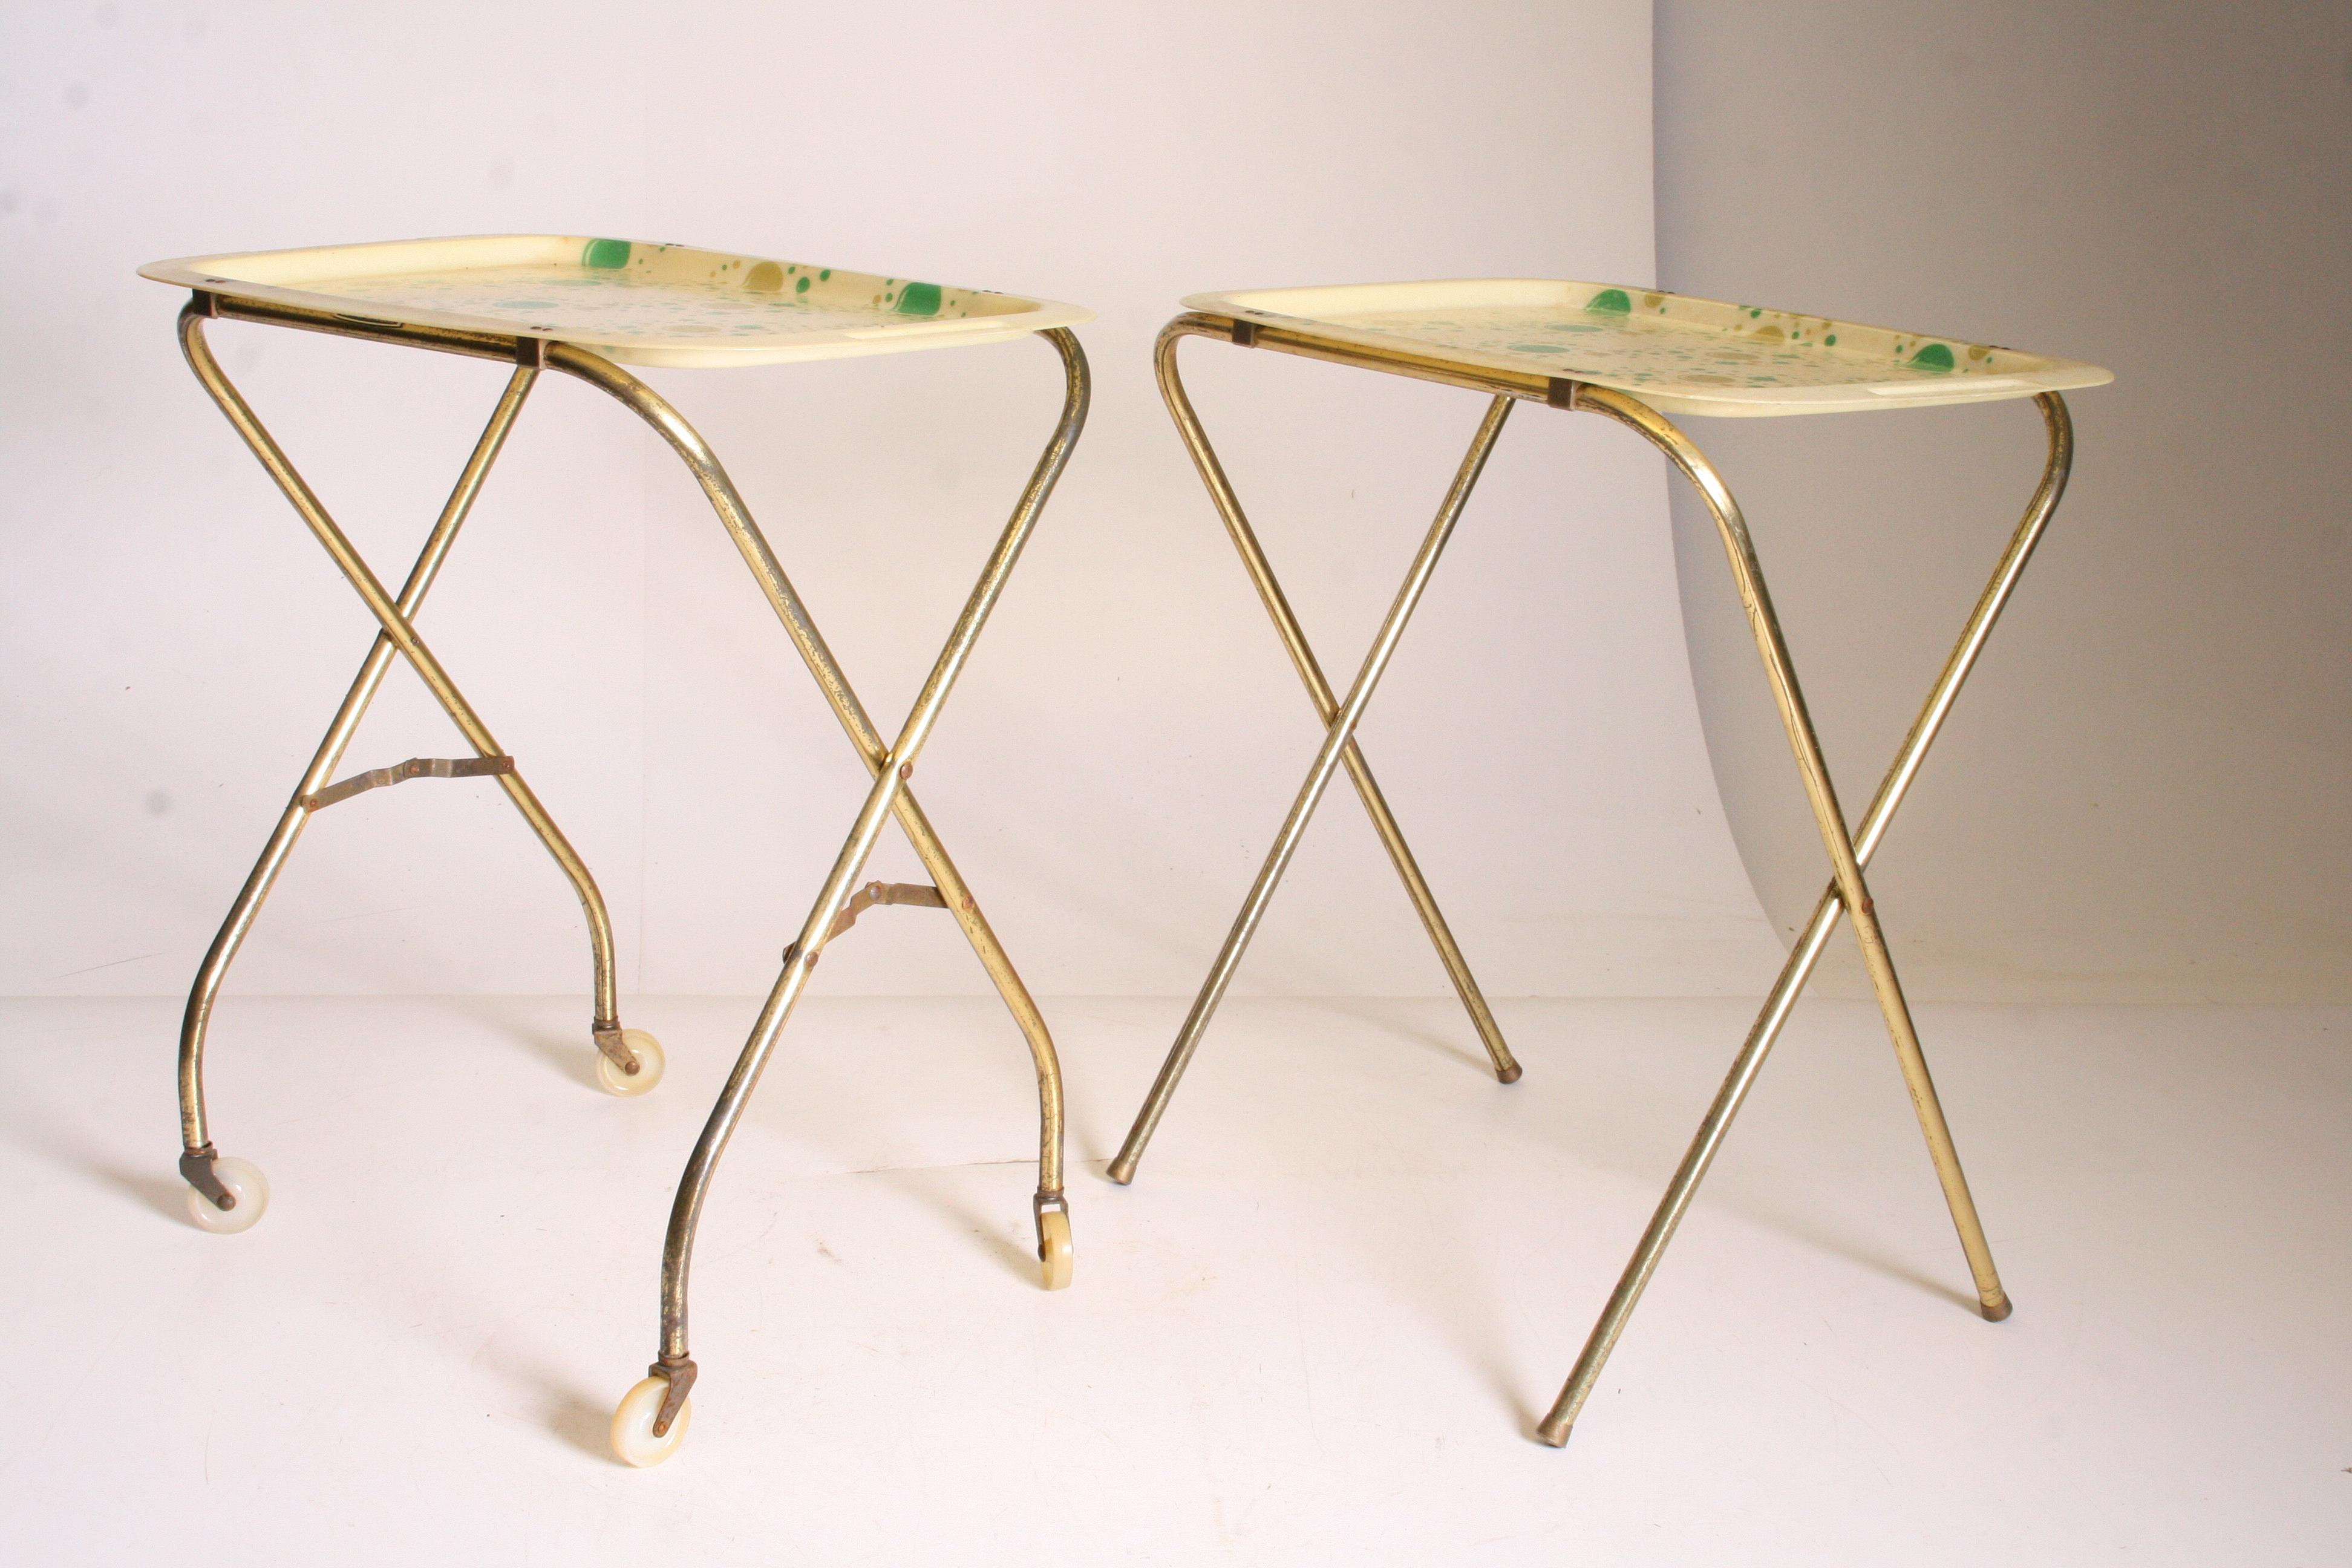 Mid Century Modern Yellow U0026 Green TV Tray Tables   Set Of 4   Image 5